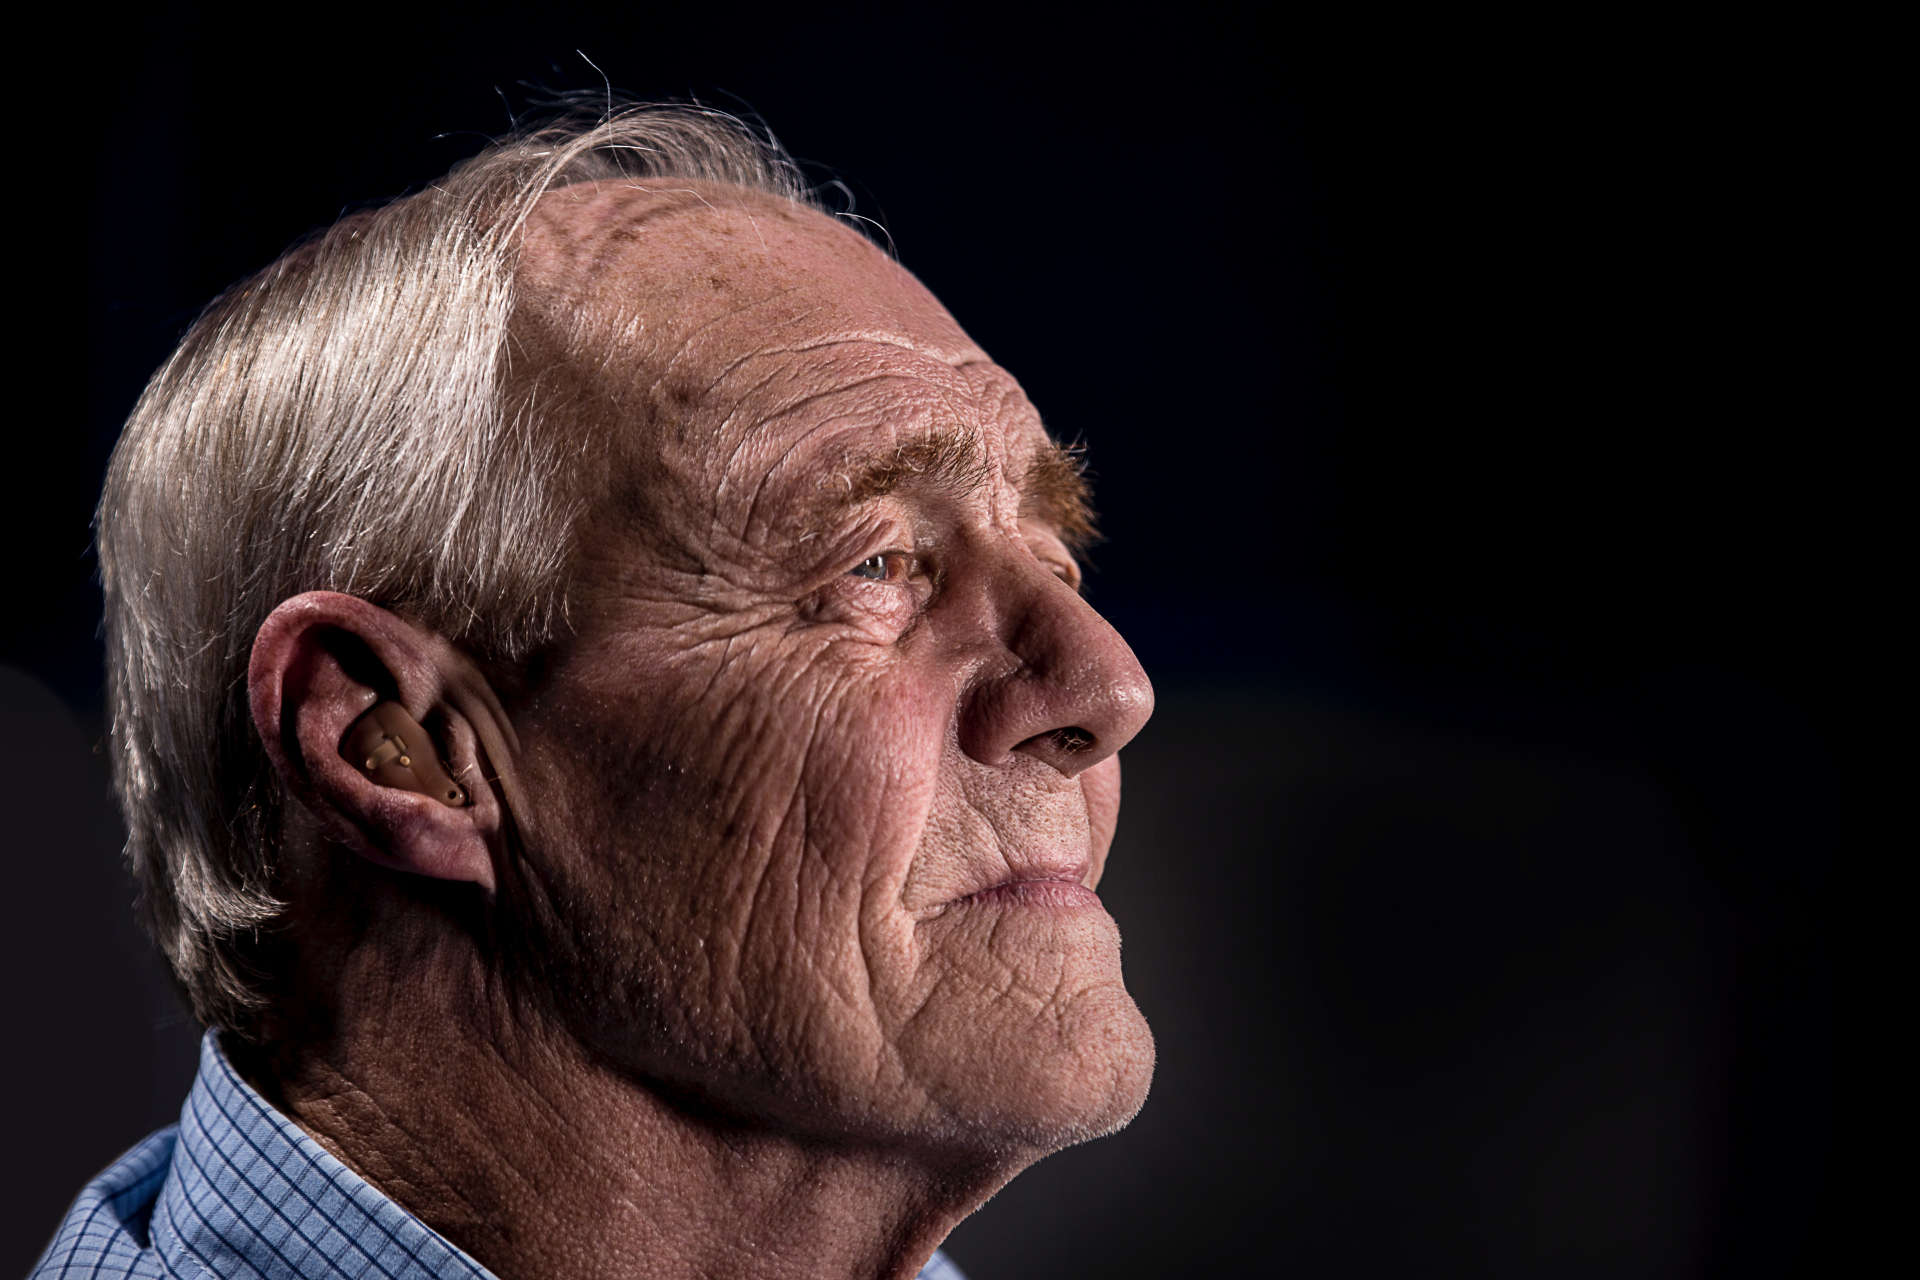 Elderly Man with Hearing Aid